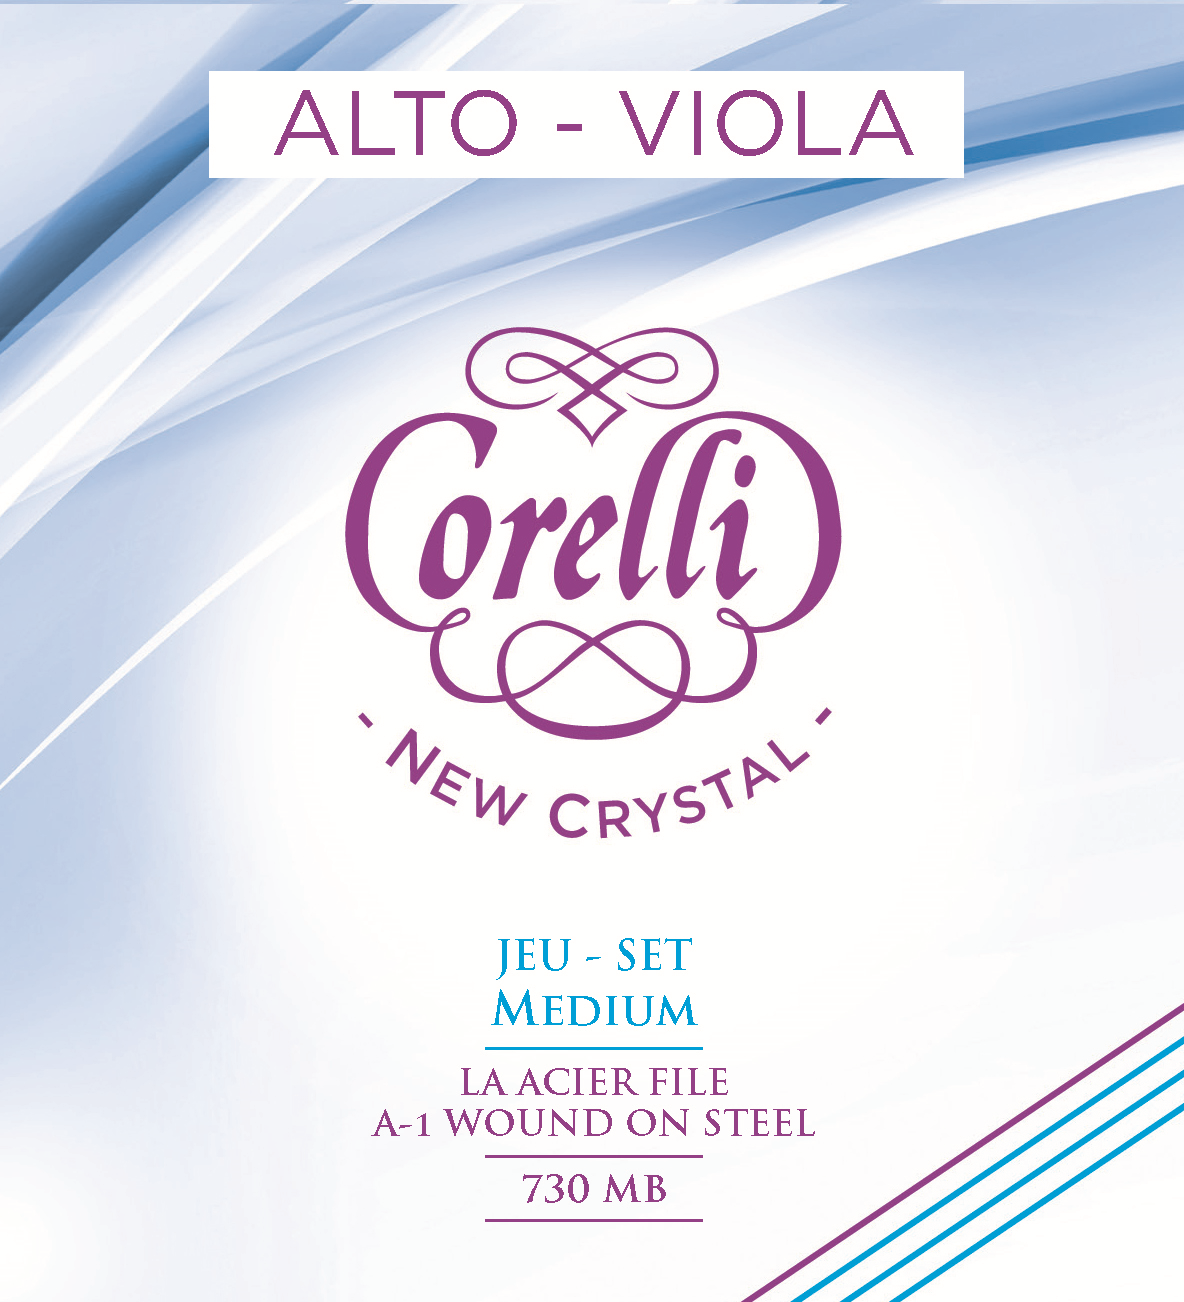 CORELLI NEW CRYSTAL MEDIUM 730MB VIOLA